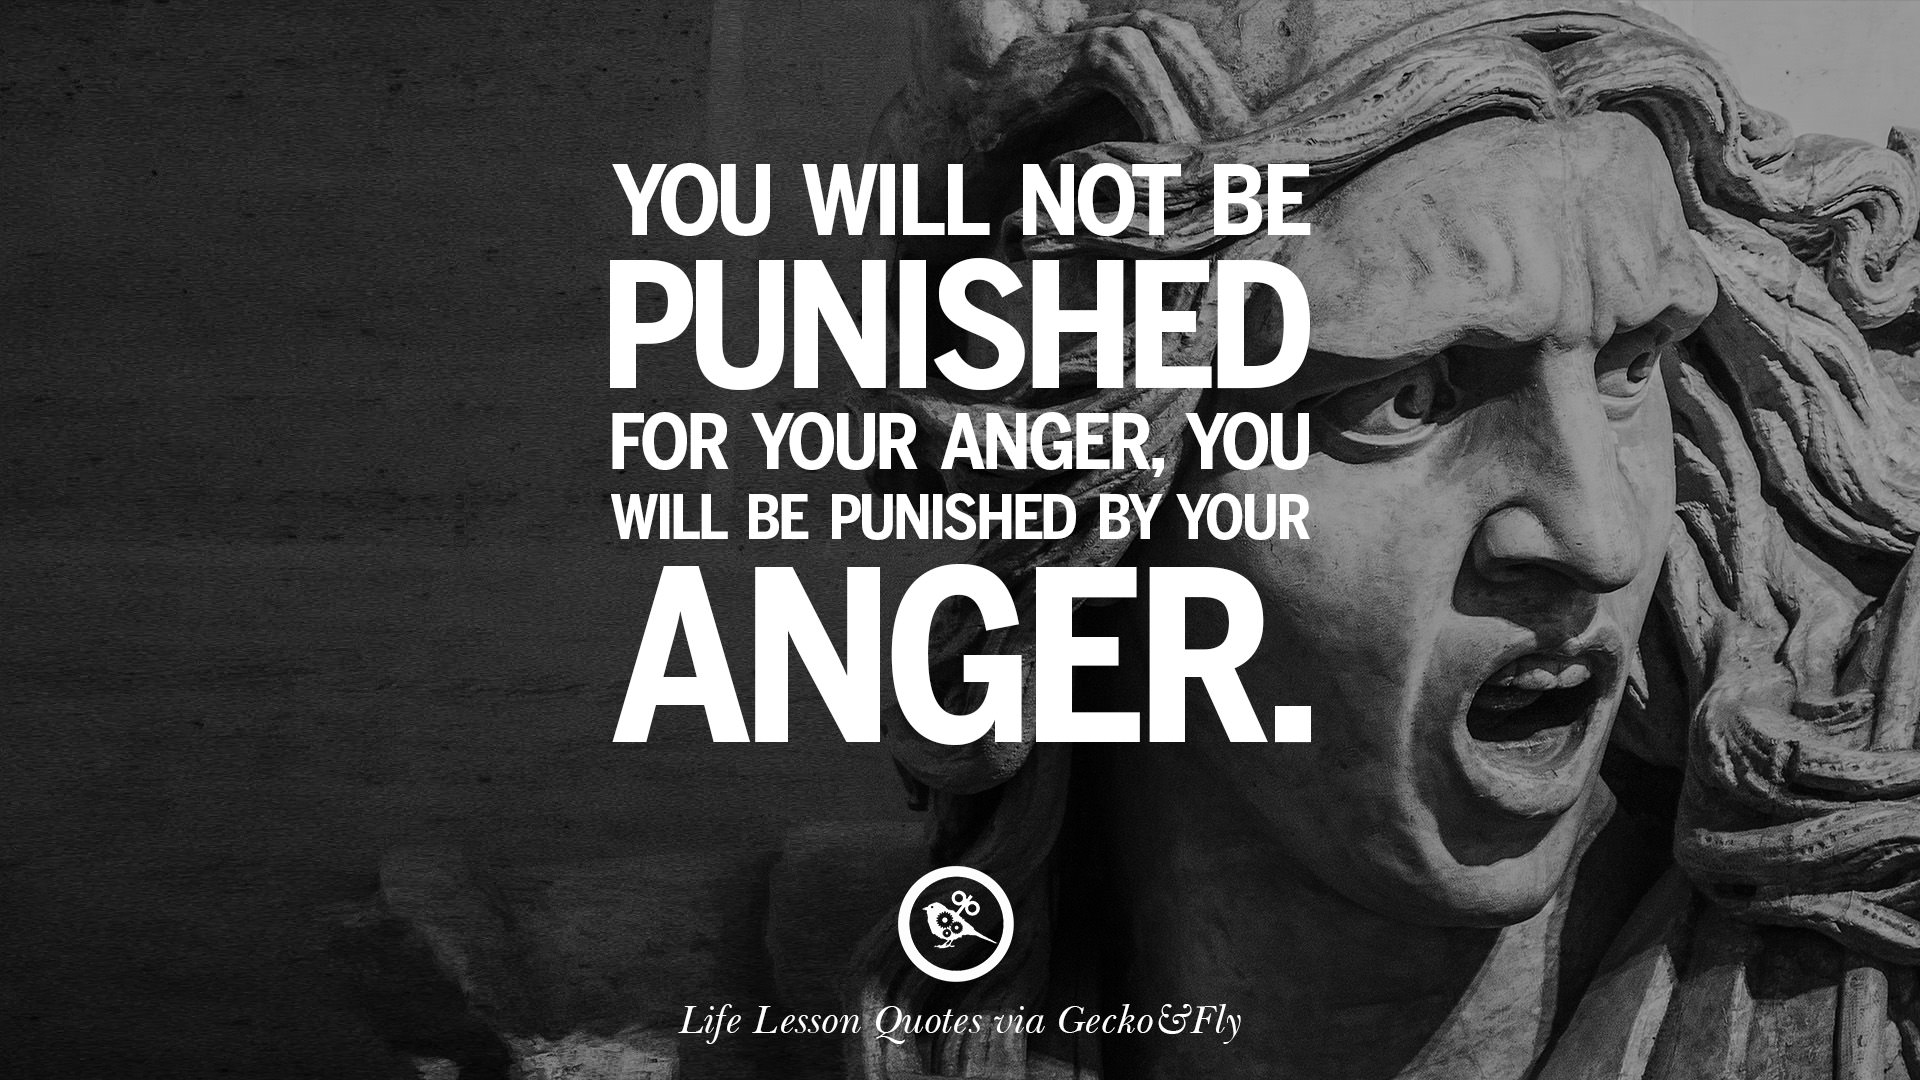 You Will Not Be Punished For Your Anger, You Will Be Punished By Your Anger